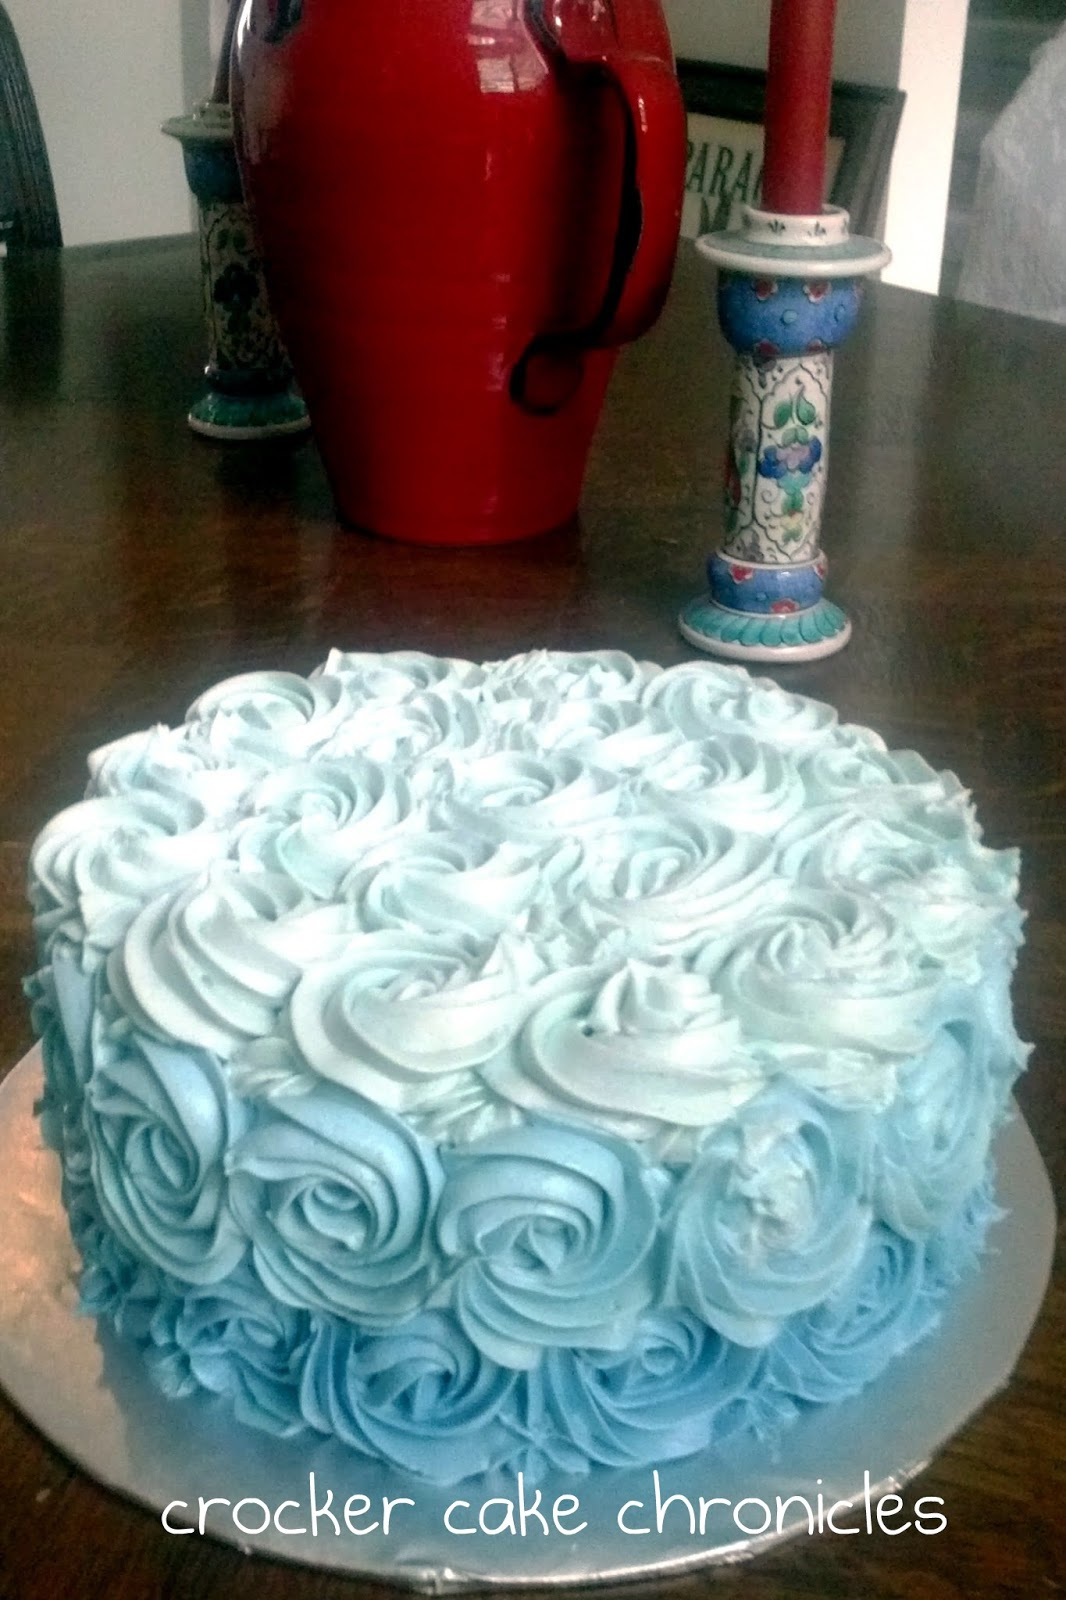 Ombre Rose Cake and Whipped Cream Frosting Crocker Cake Chronicles